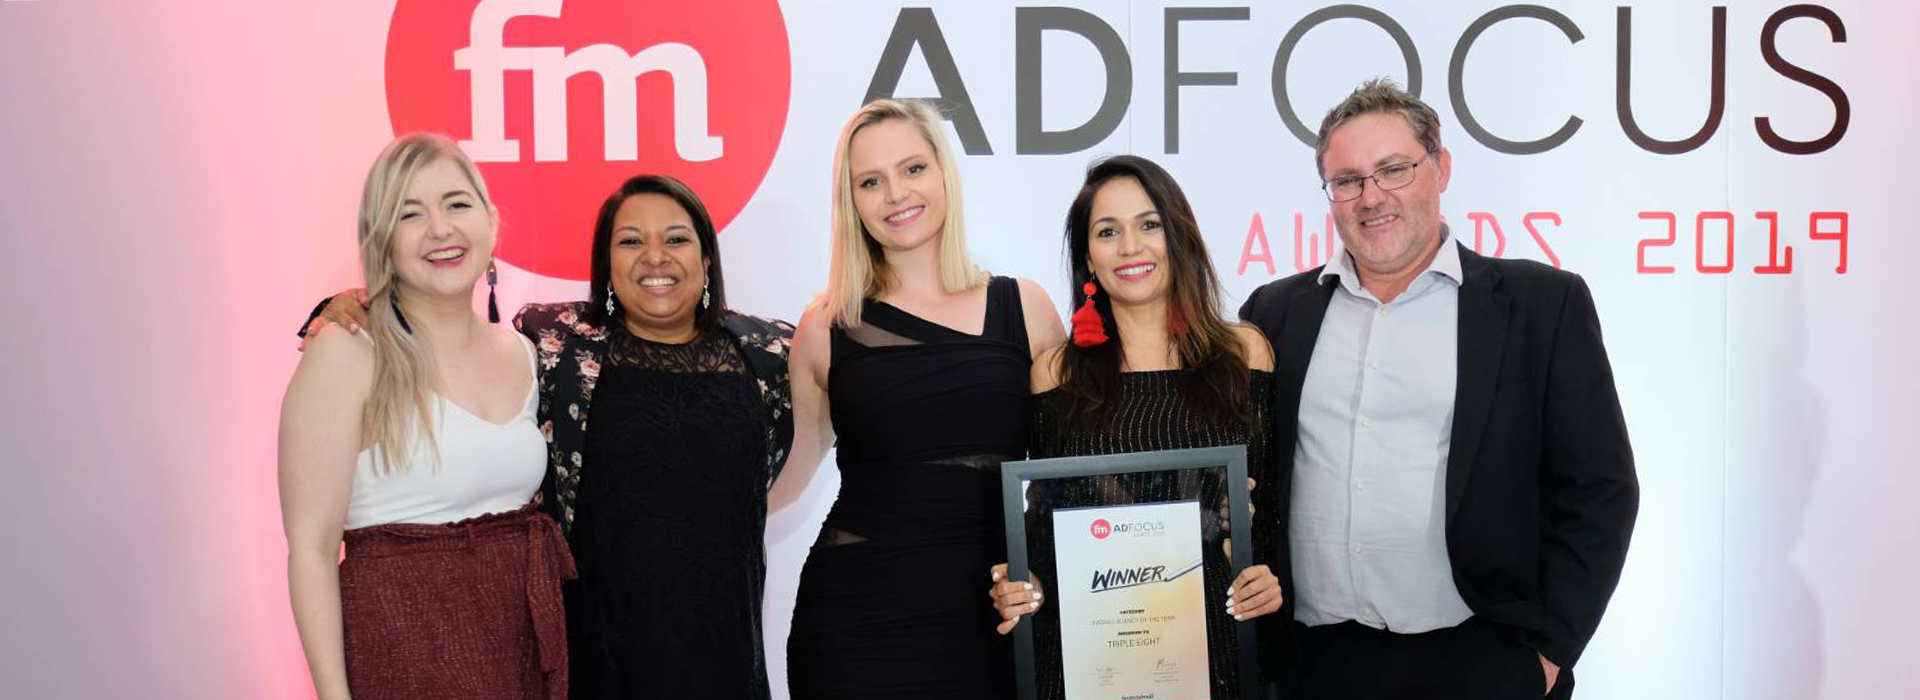 FM Adfocus Overall Agency of the Year 2019